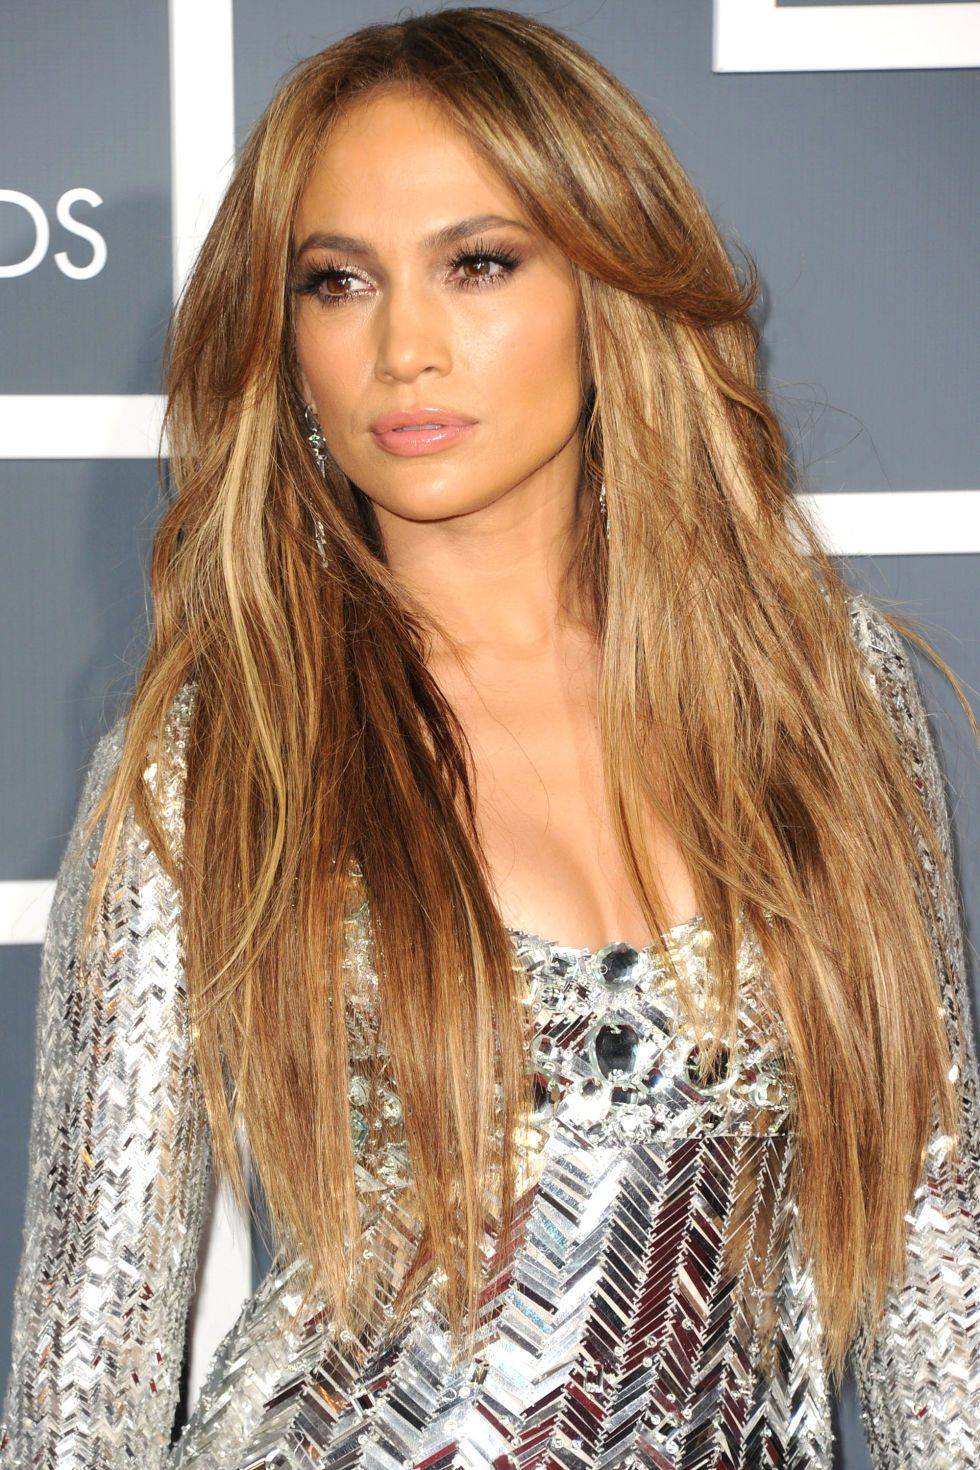 bildresultat för jennifer lopez hair | dos | pinterest